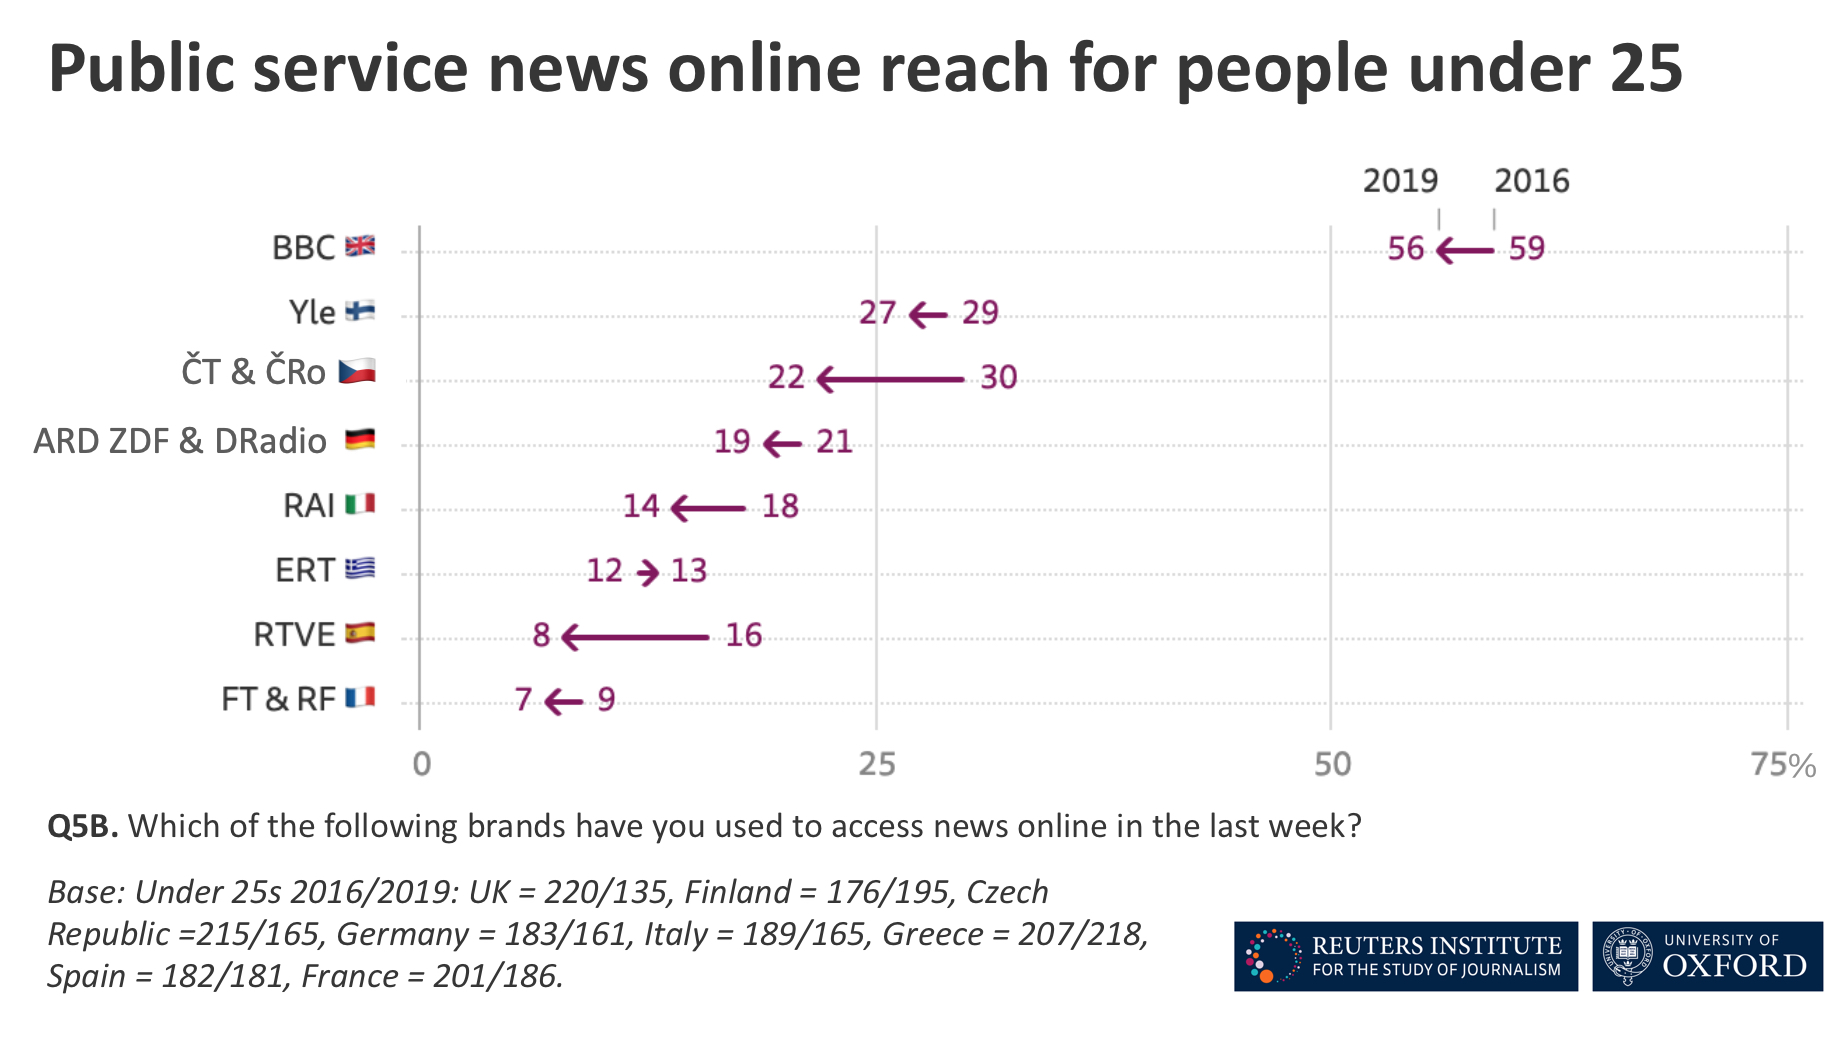 Online reach of public service news among people under 25 in 2016 and 2019